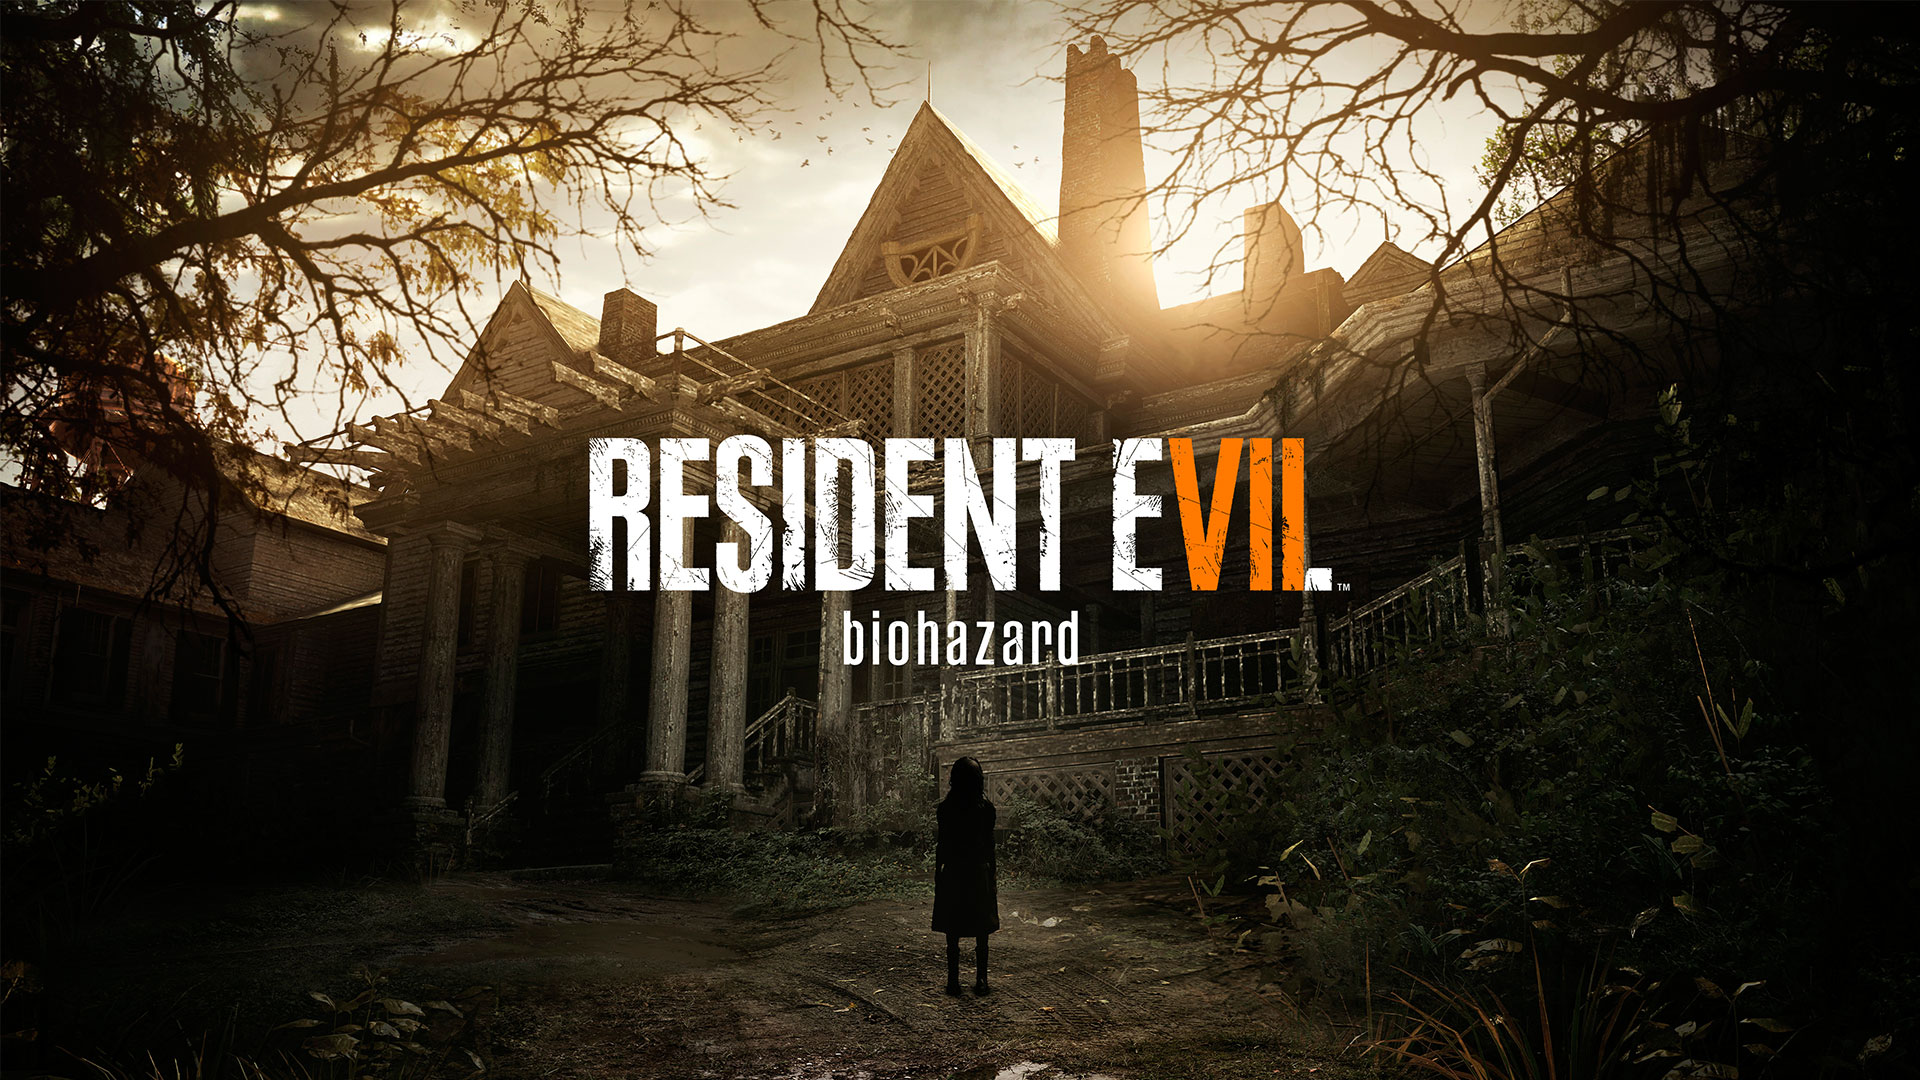 Capcom ya ha lanzado las Grabaciones Inéditas de Resident Evil 7 biohazard en Steam y pronto estará disponible en Windows 10.